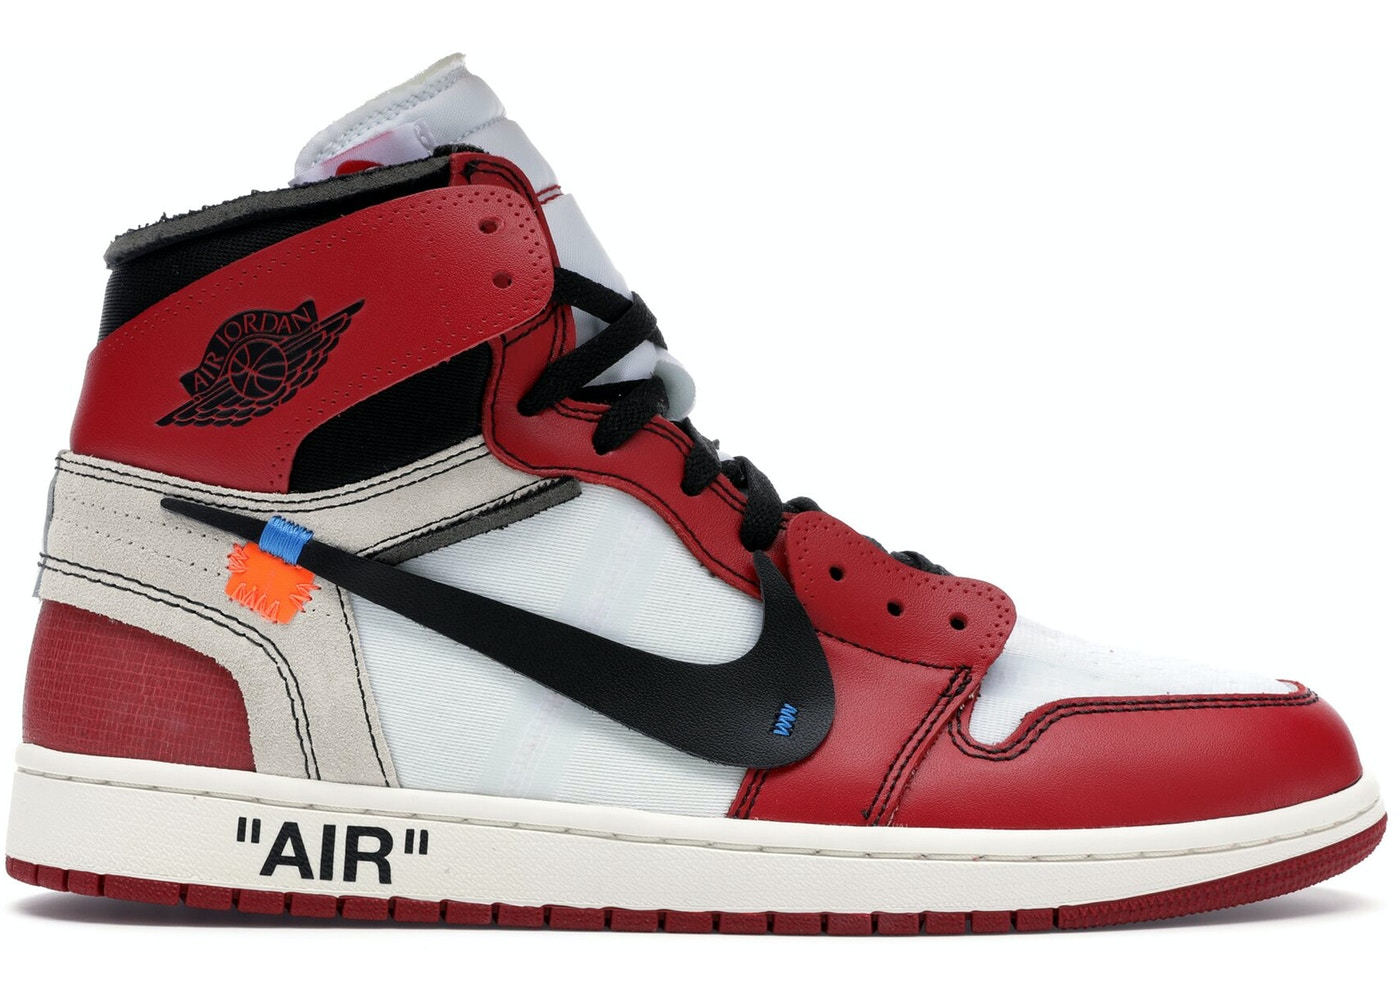 ed8e3604 Jordan 1 Retro High Off-White Chicago - AA3834-101